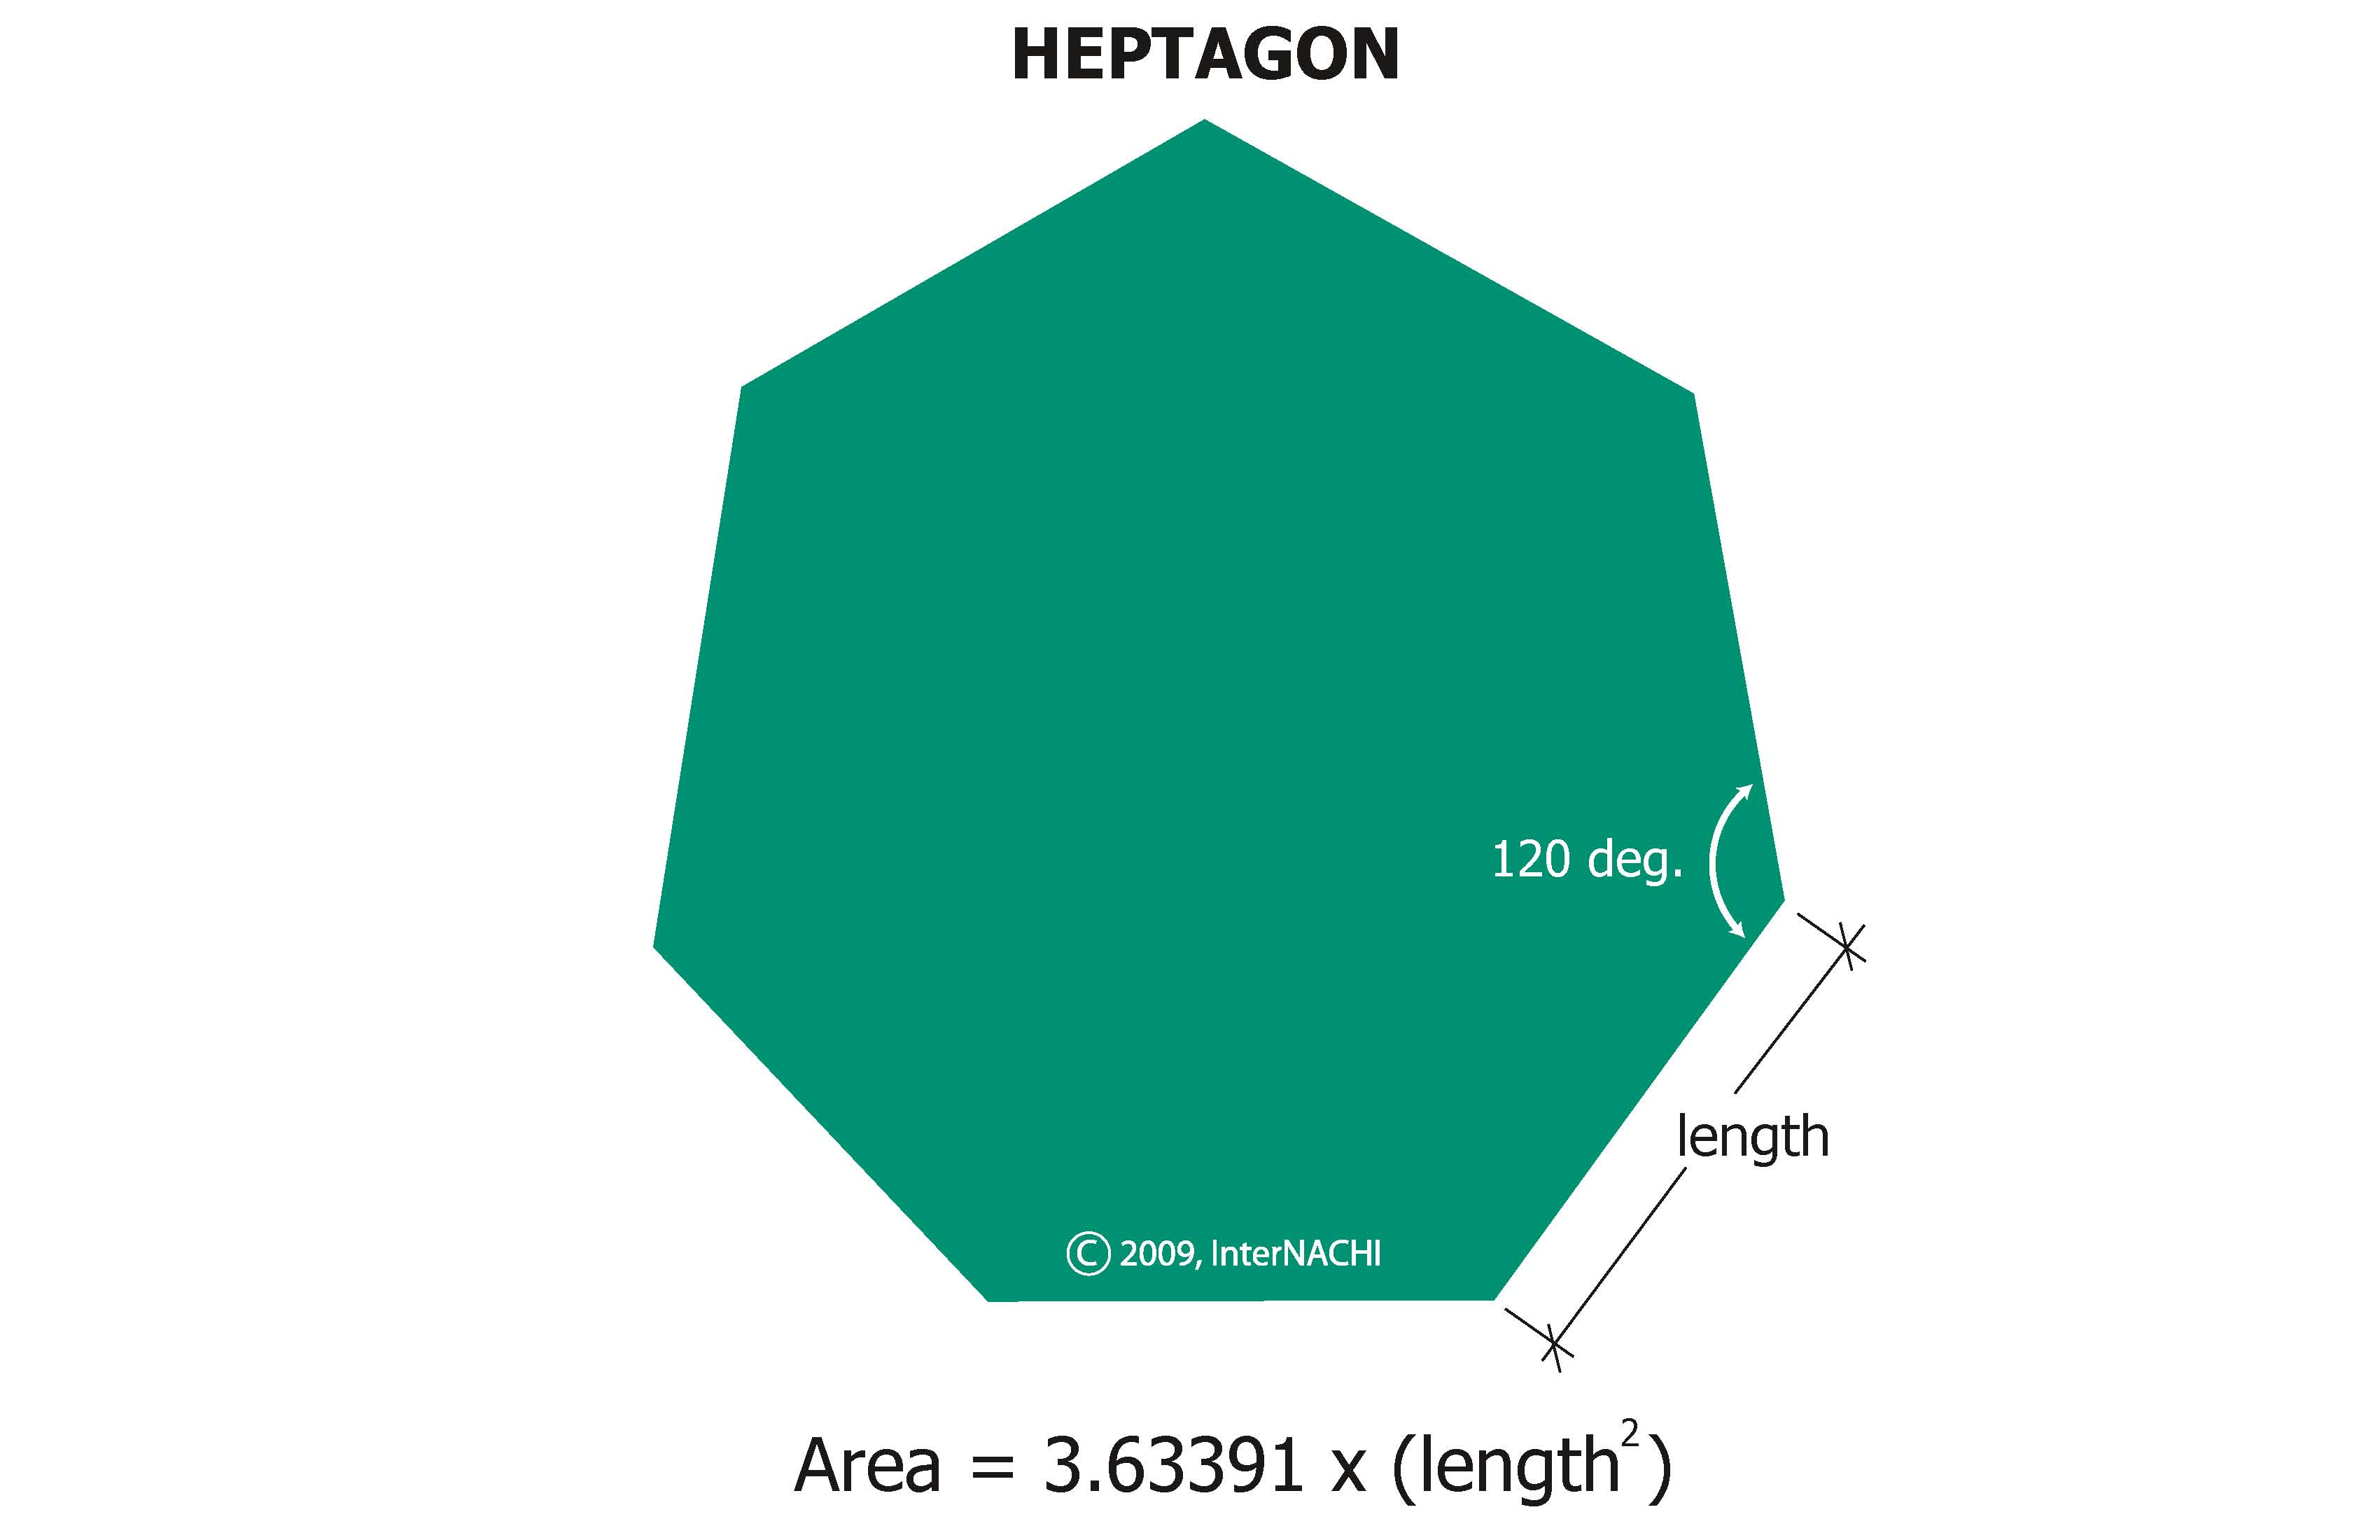 Area of a heptagon.